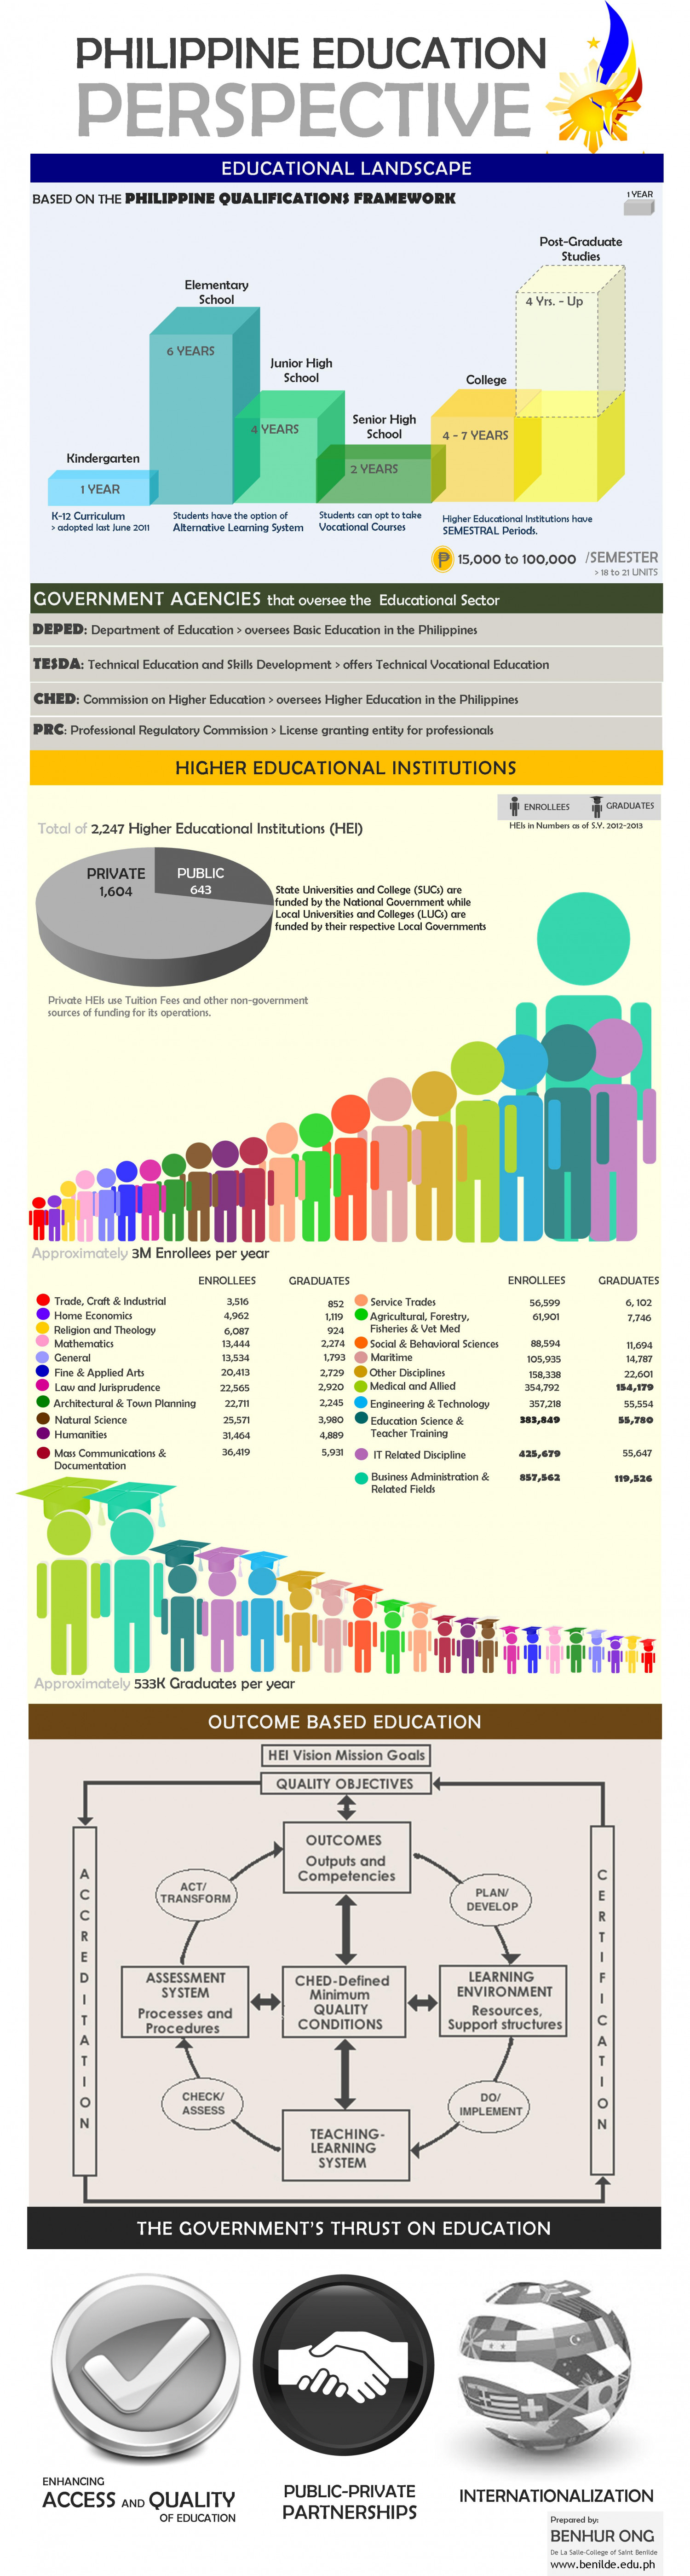 Philippine Education 2011 Infographic